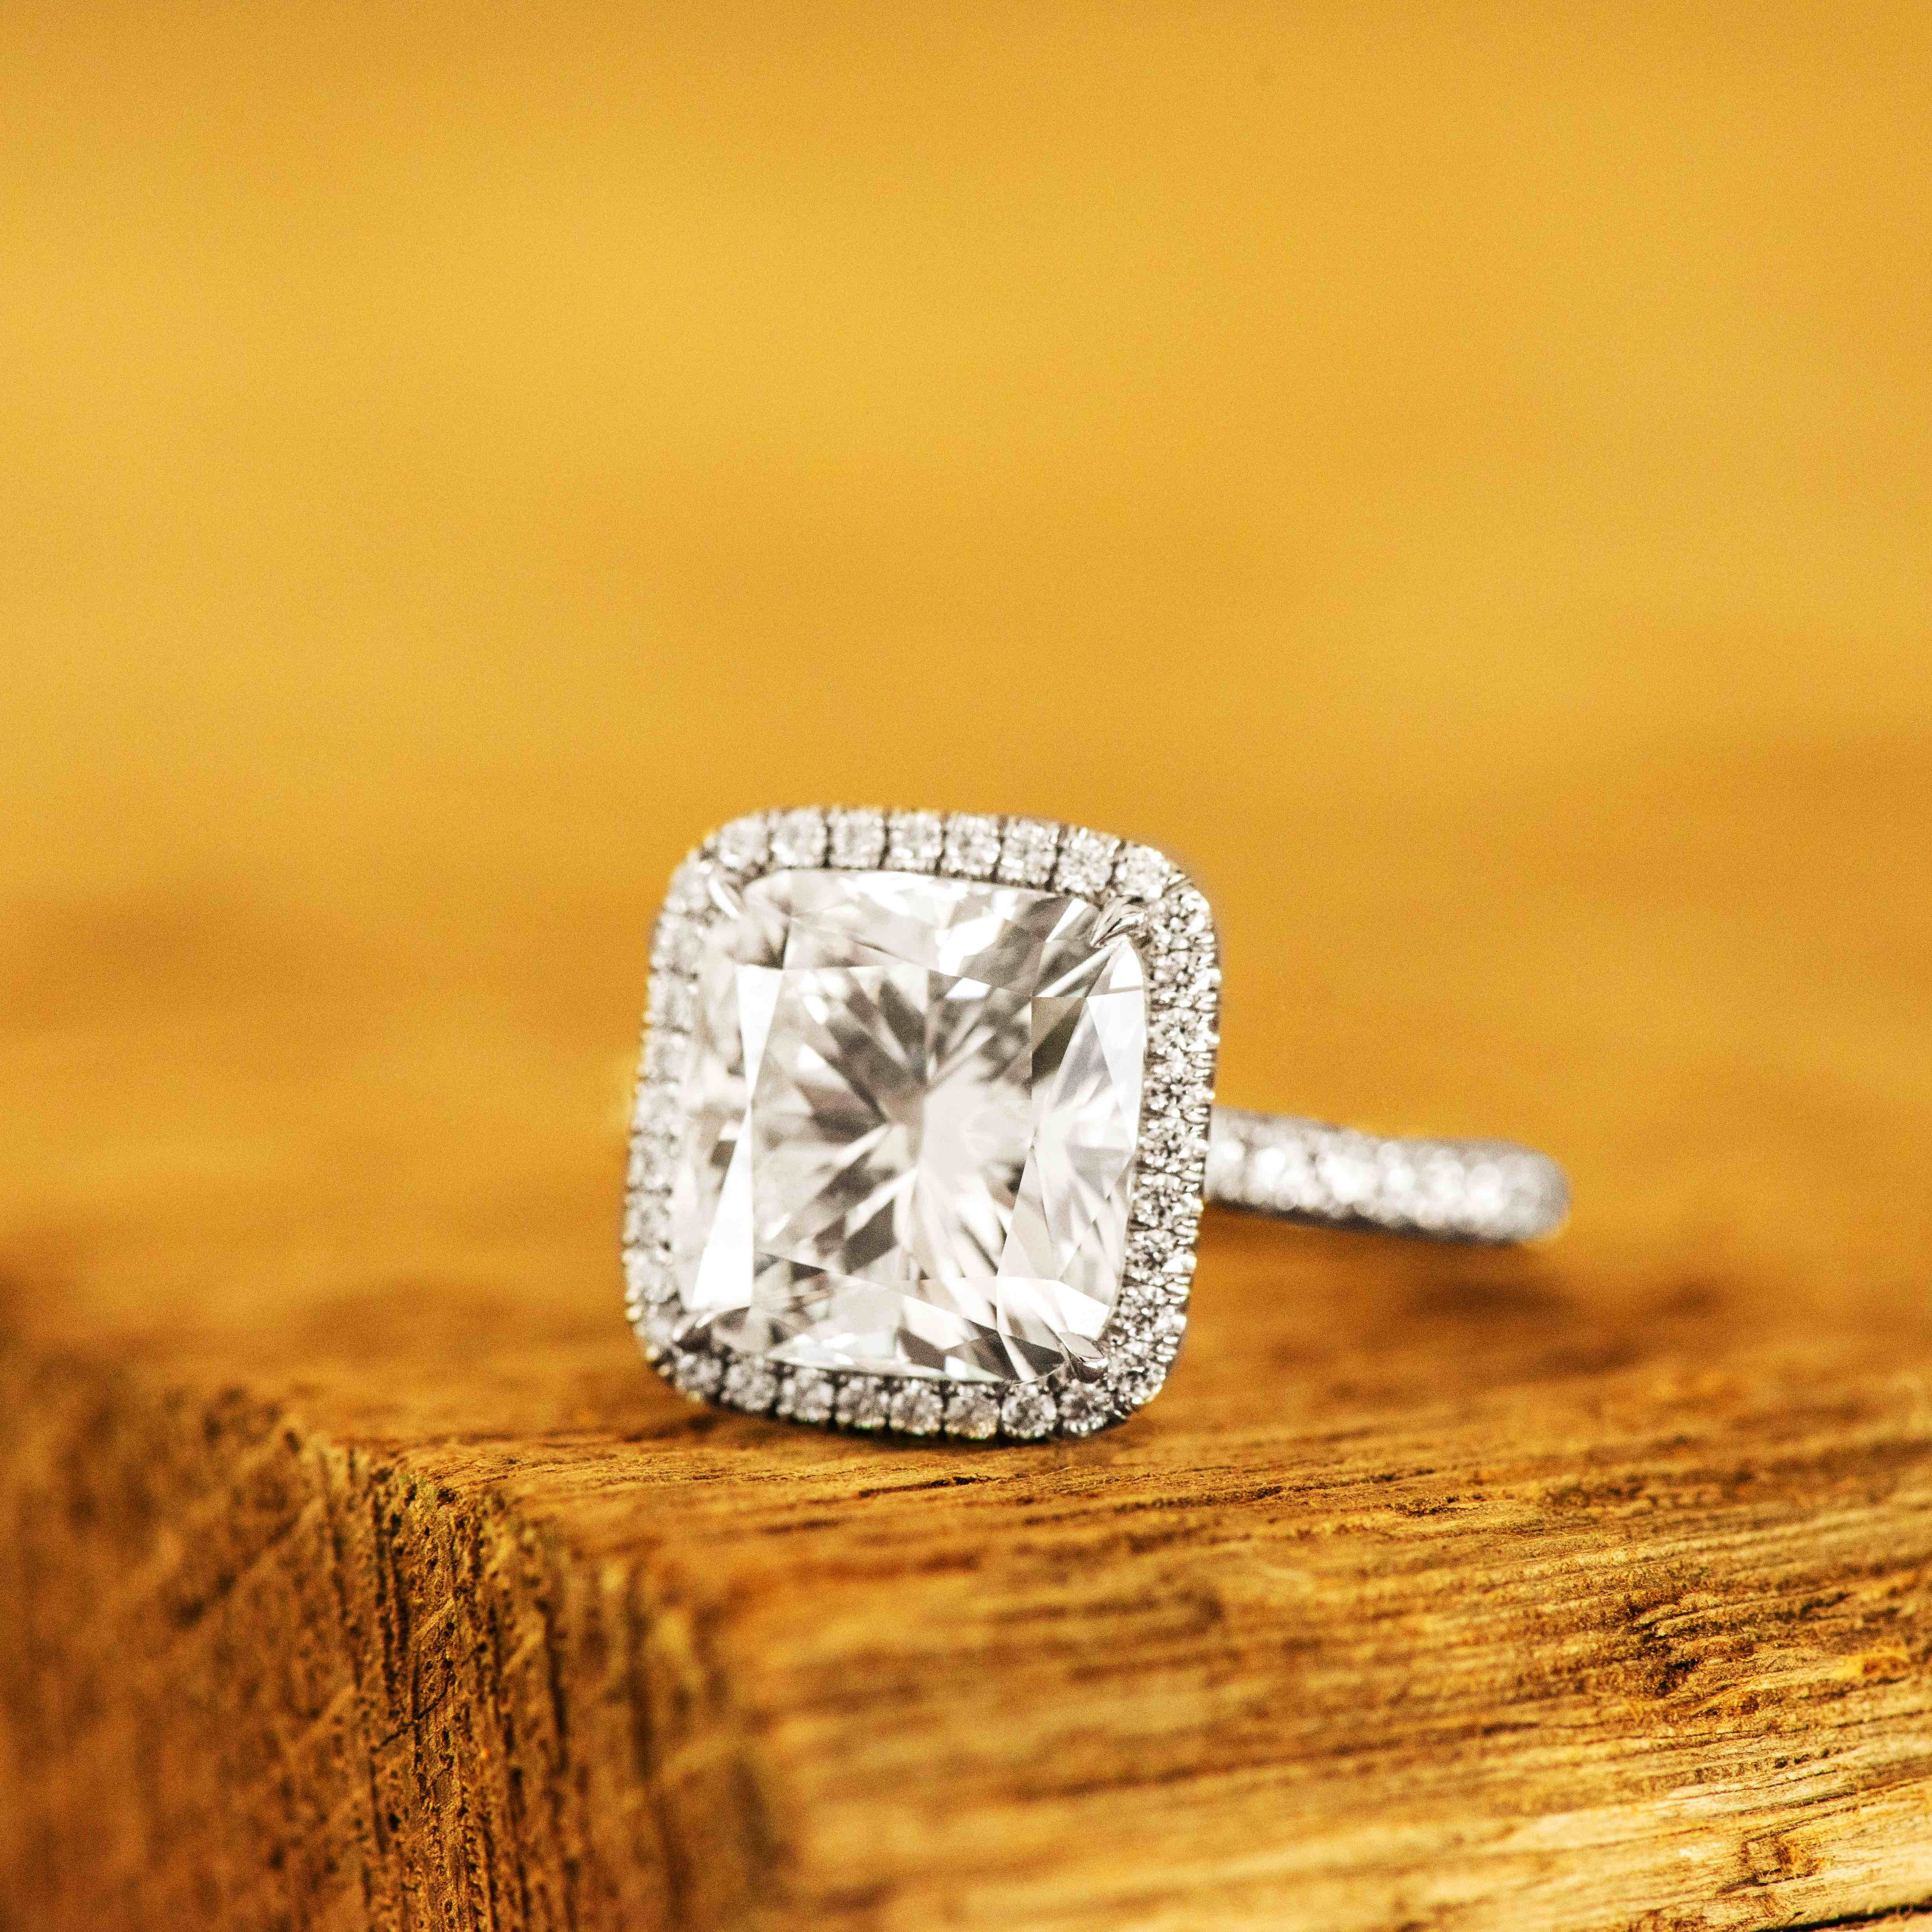 We Strive To Give Our Customers The Absolute Best Experience Buying Diamonds Stop By The Universal Diamonds Showr Diamond Jewelry Store Jewelry Diamond Stores